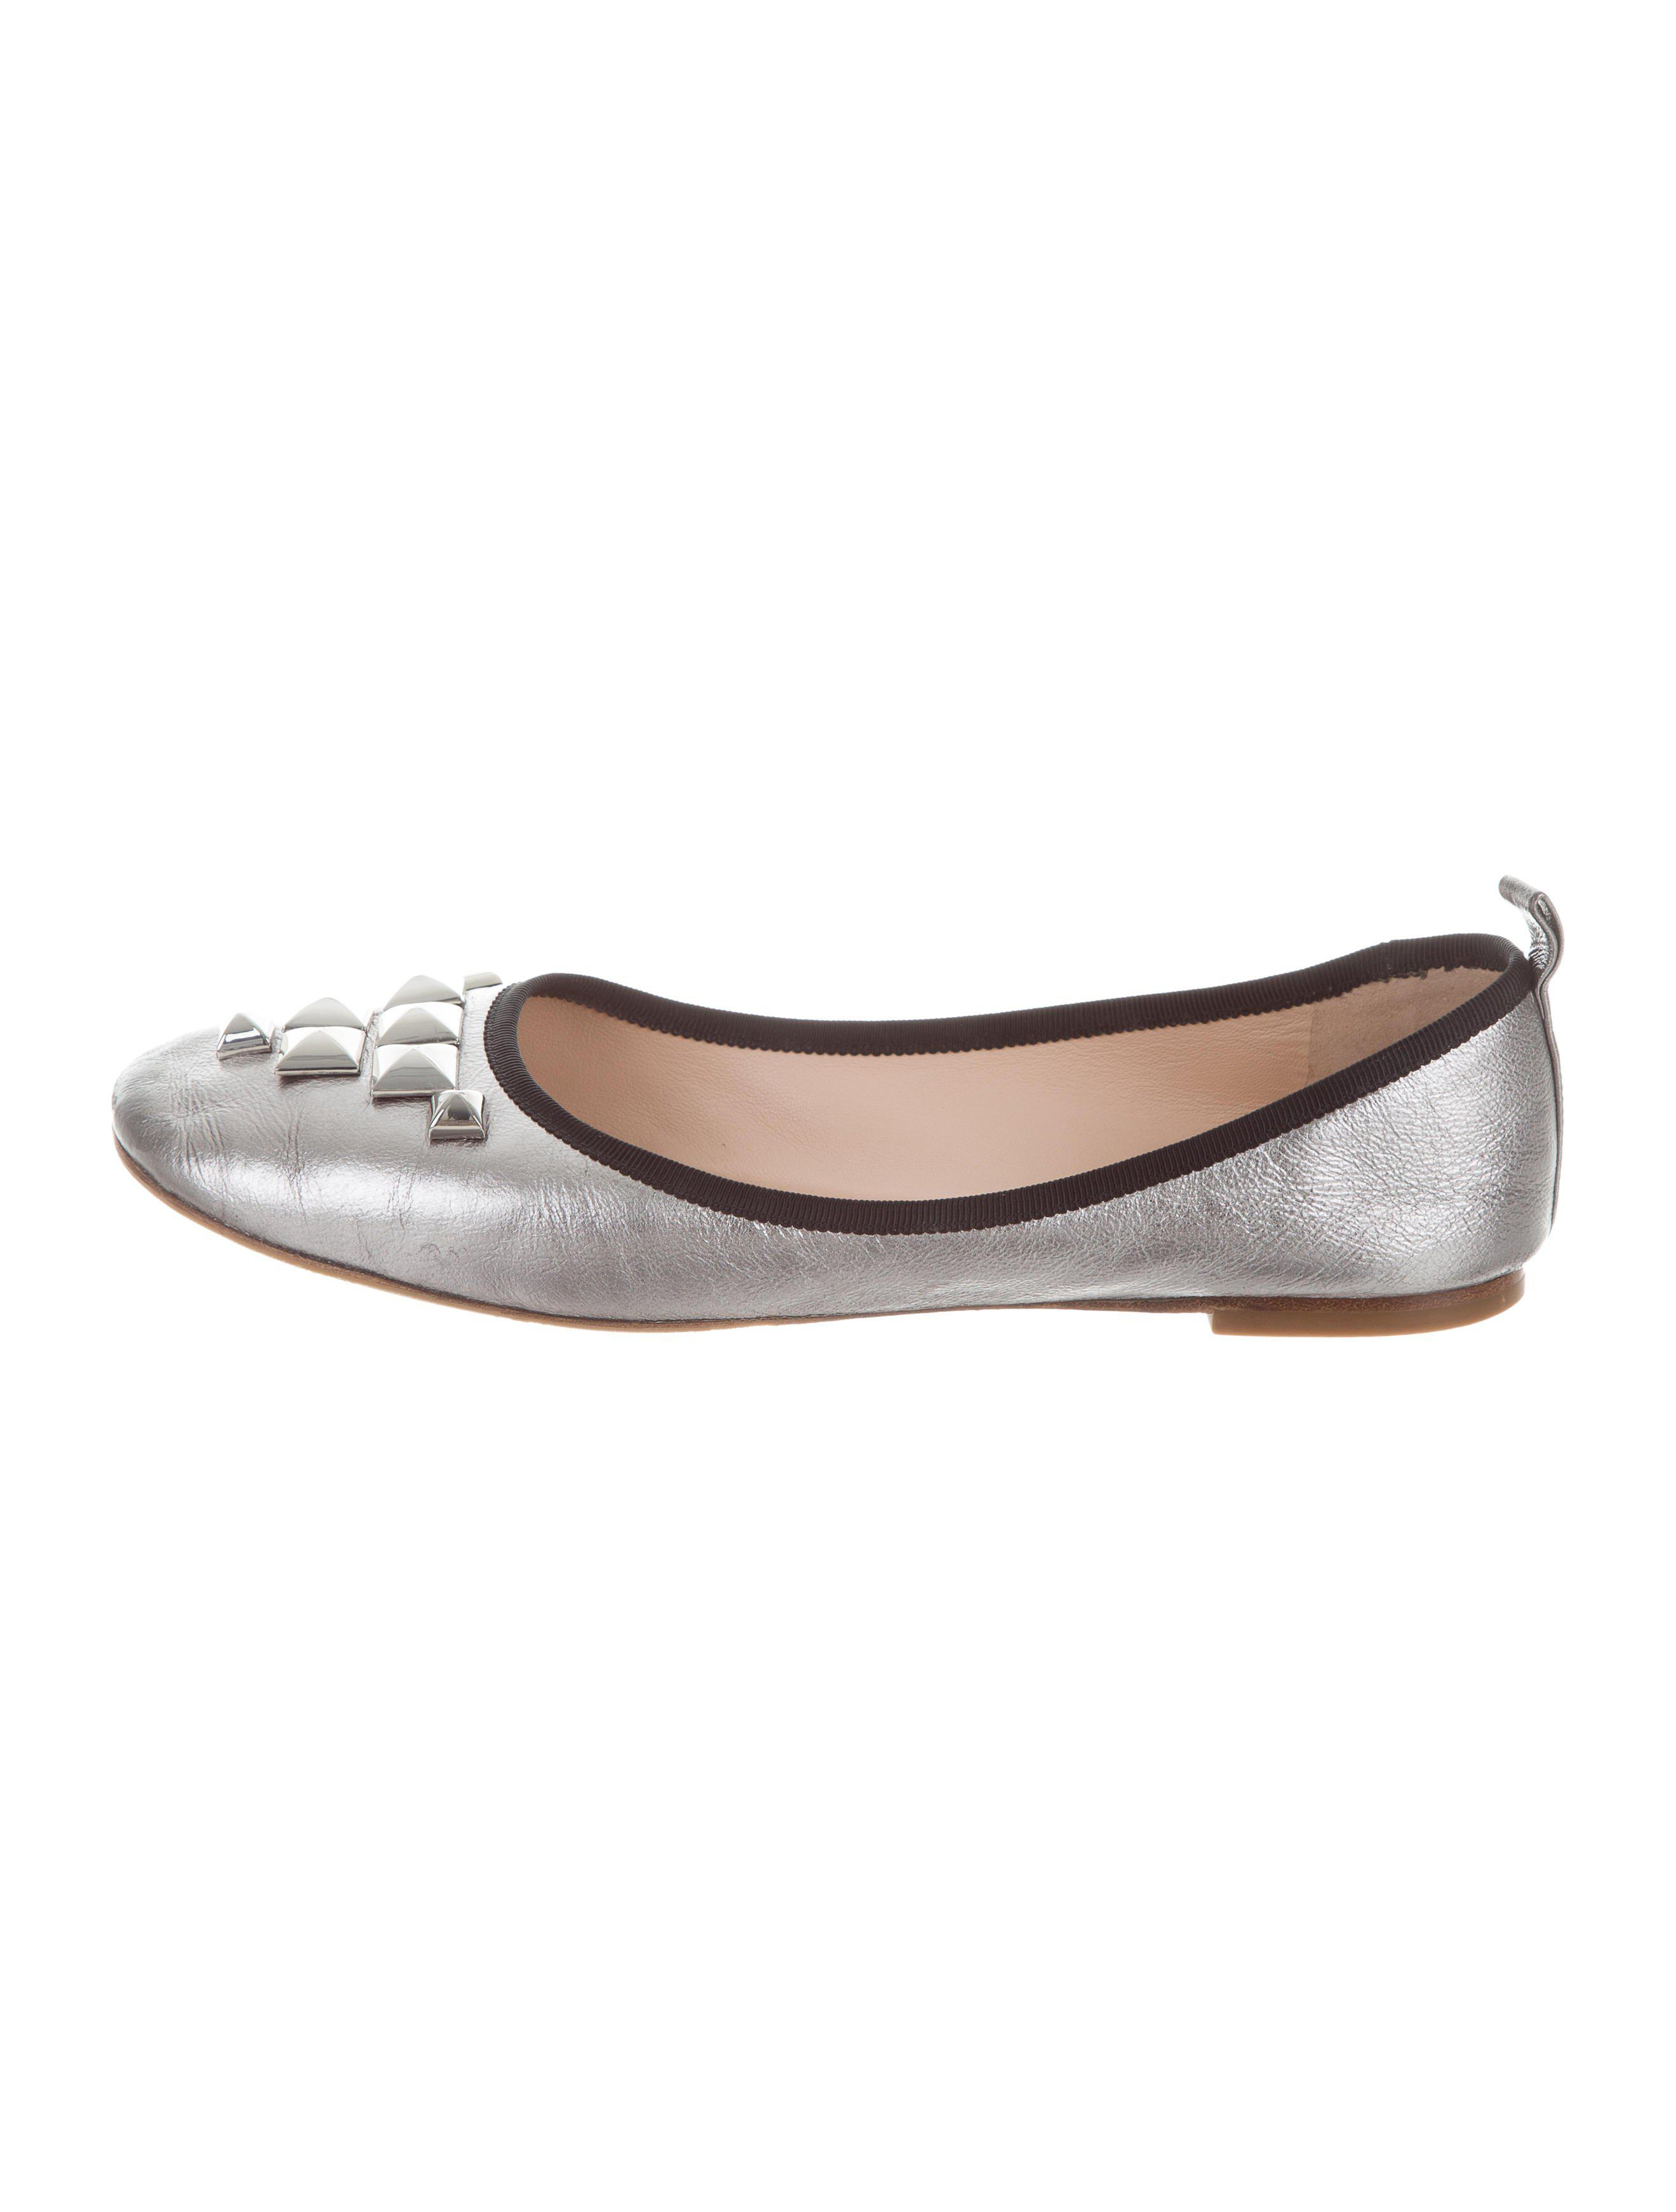 Marc Jacobs Metallic Embellished Flats free shipping low price fee shipping websites online cheap sale wiki footlocker finishline for sale clearance best wholesale yHcKcGOAoO